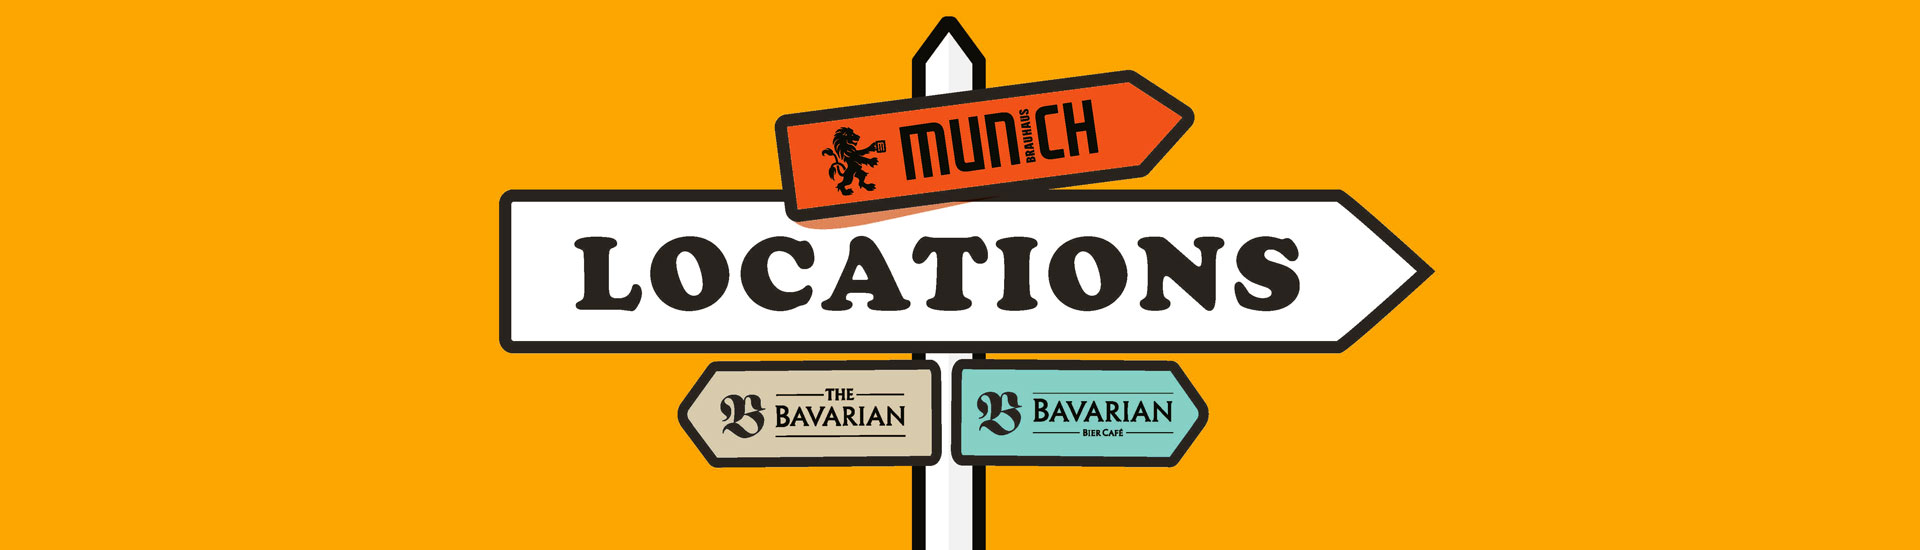 wurstLocations.jpg